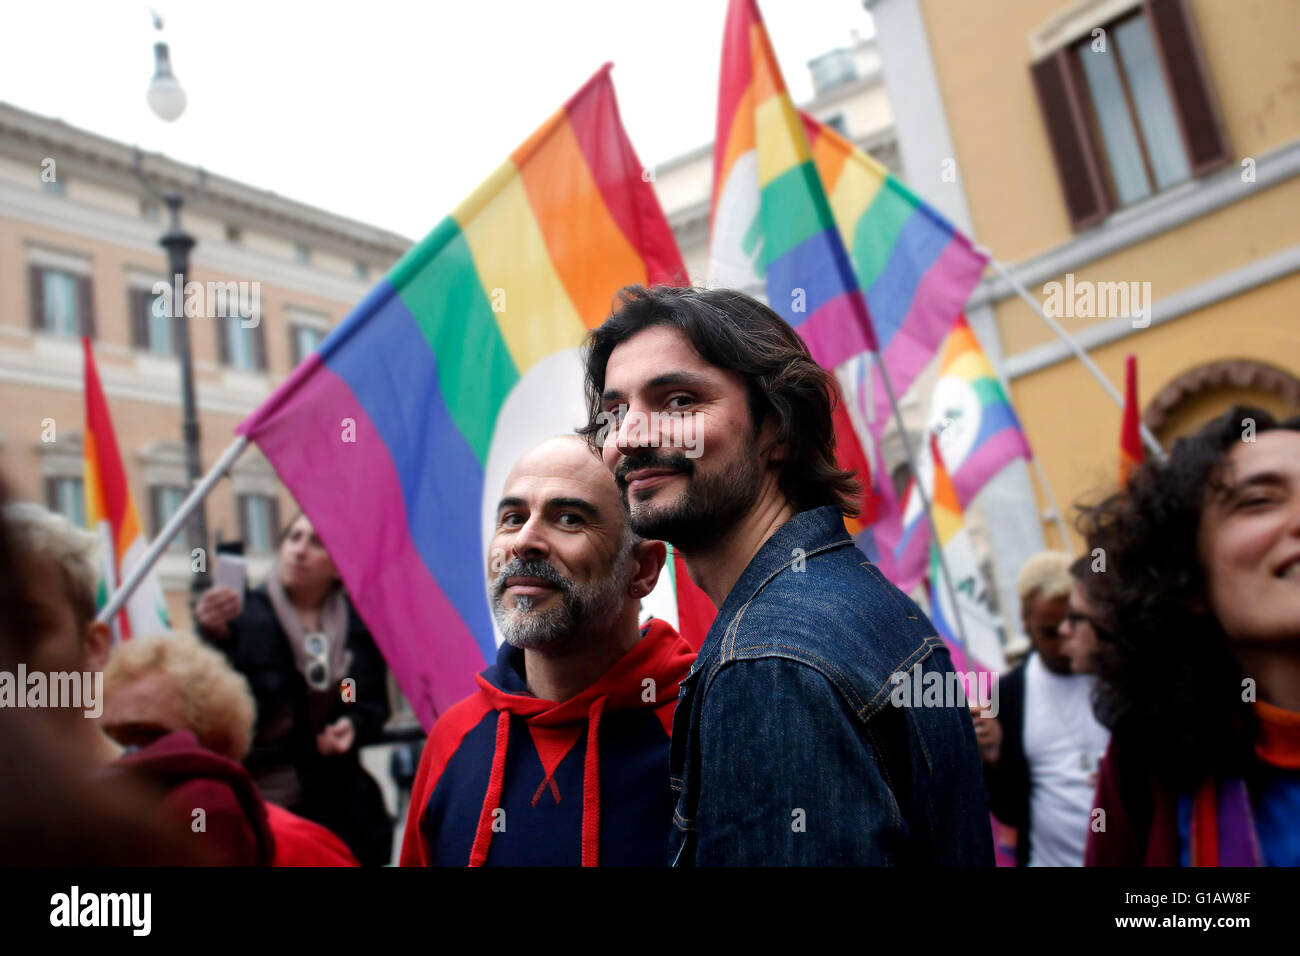 Rome, Italy. 11th May, 2016. Rome 11th May 2016. Demonstration for Civil Rights while at the Lower Chamber takes - Stock Image